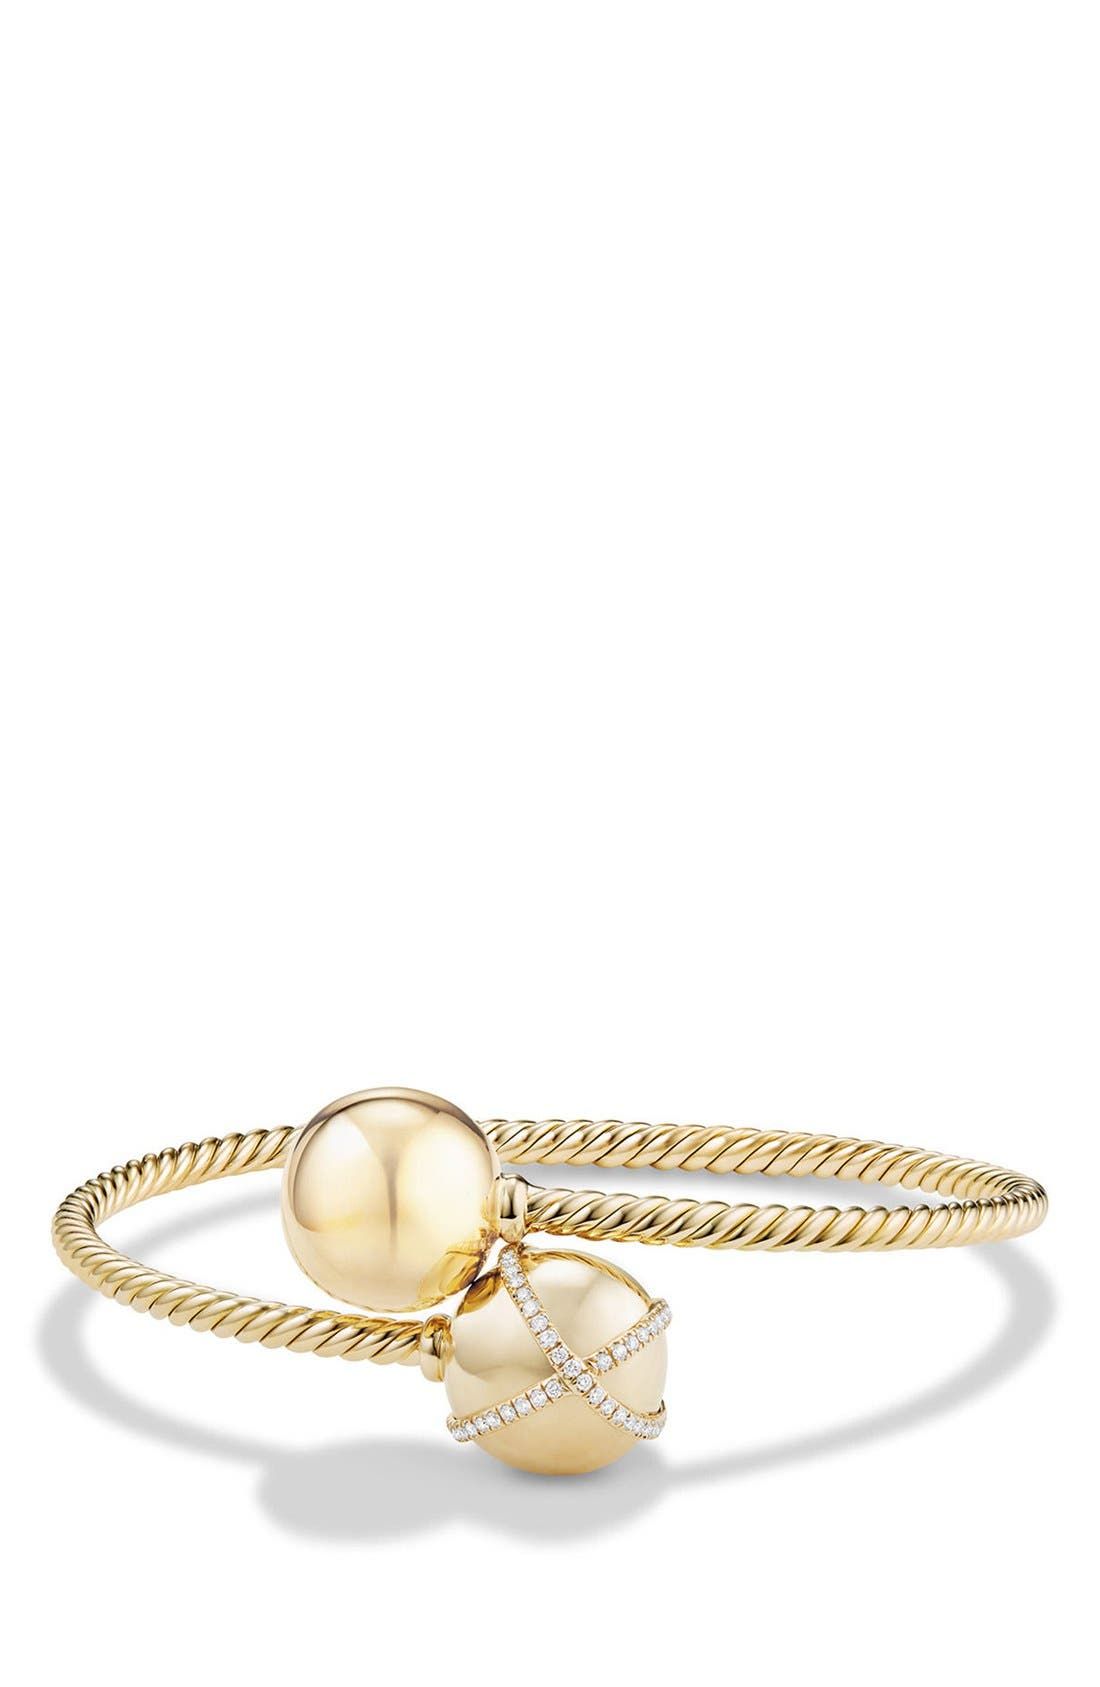 'Solari Bypass' Bracelet with Diamonds in 18K Gold,                         Main,                         color, YELLOW GOLD